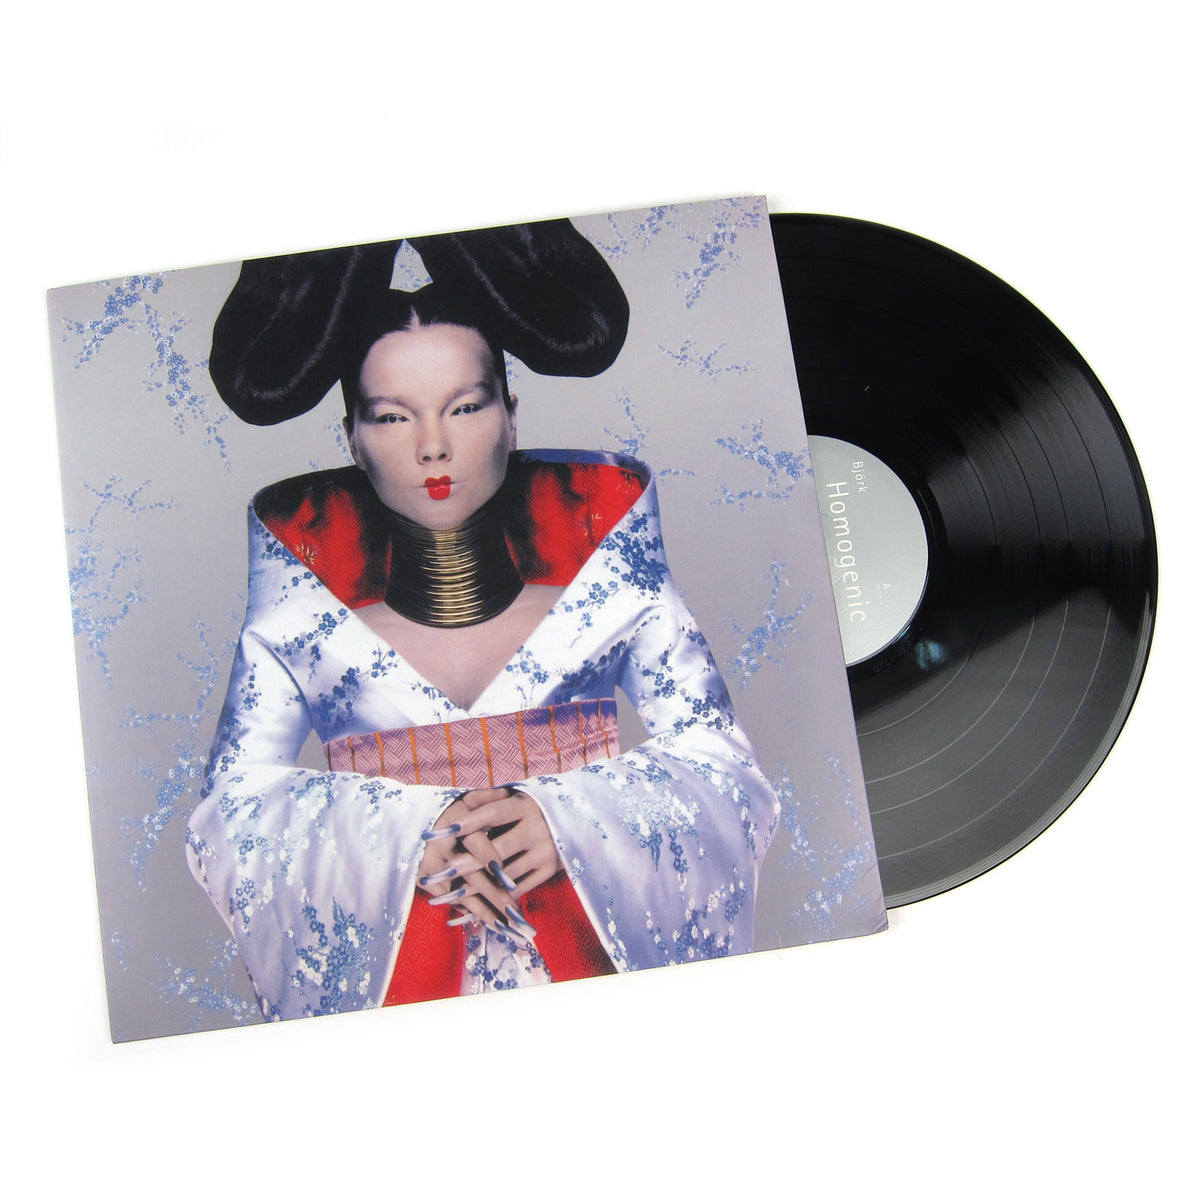 Bjork: 180g Vinyl LP Album Pack (Debut, Post, Homogenic, Vespertine)